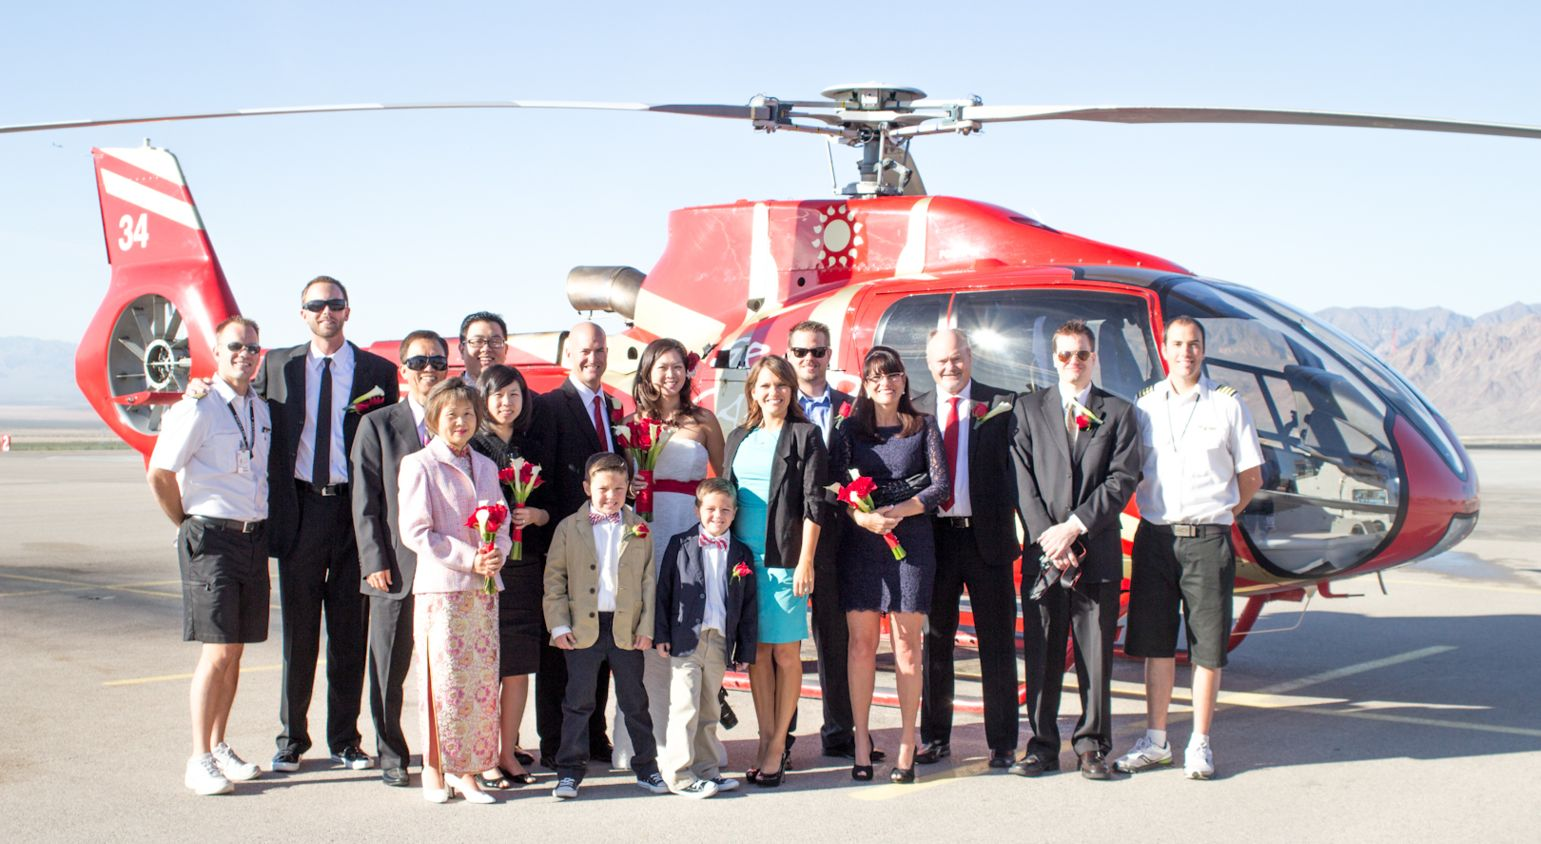 A small wedding group poses in from of a Grand Canyon helicopter.